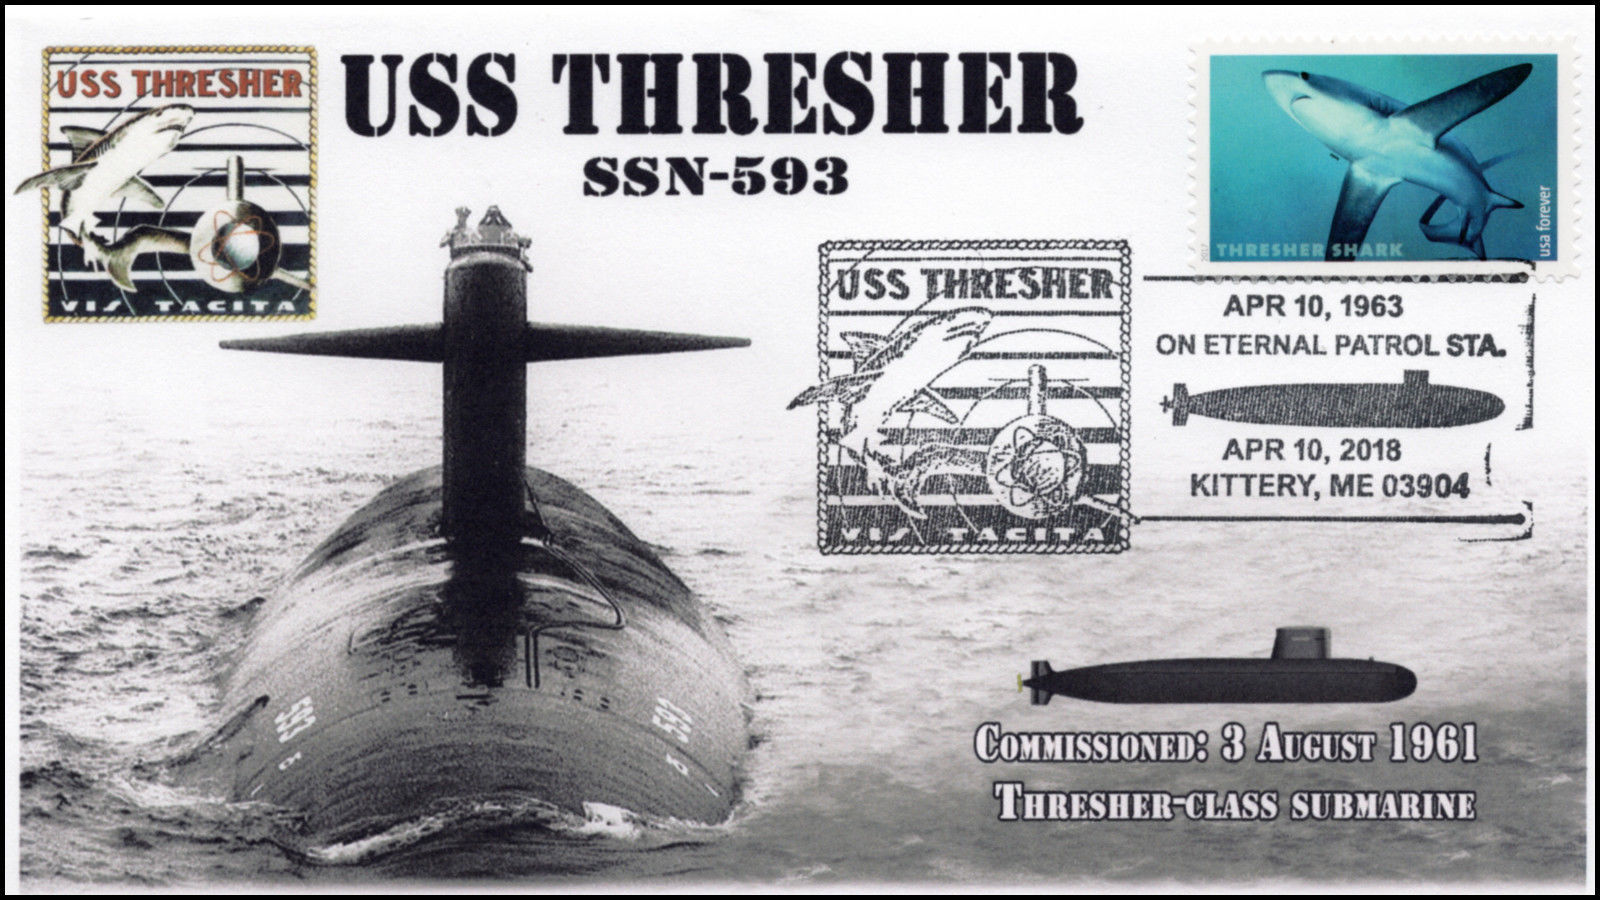 18-134, 2018, uss thresher, ssn-593, pictorial, event cover